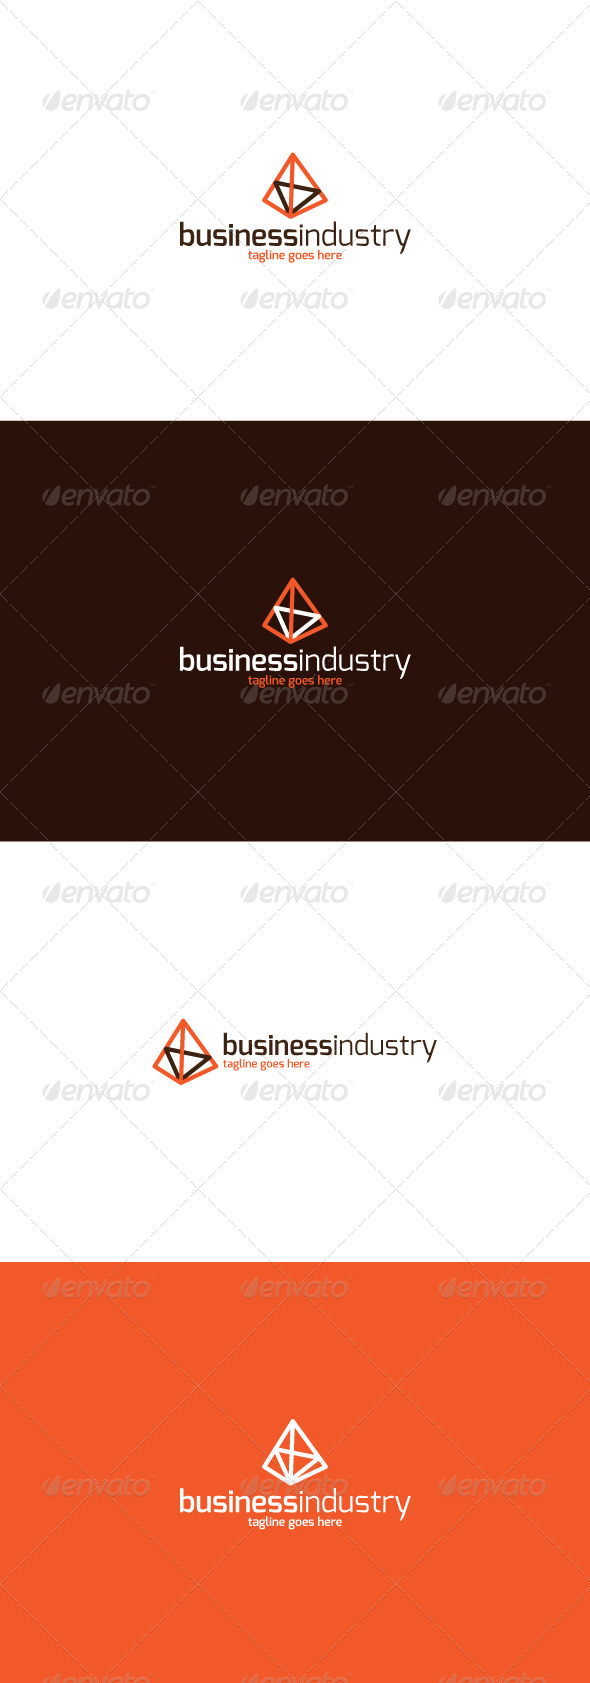 GraphicRiver Business Industry Logo 8642741